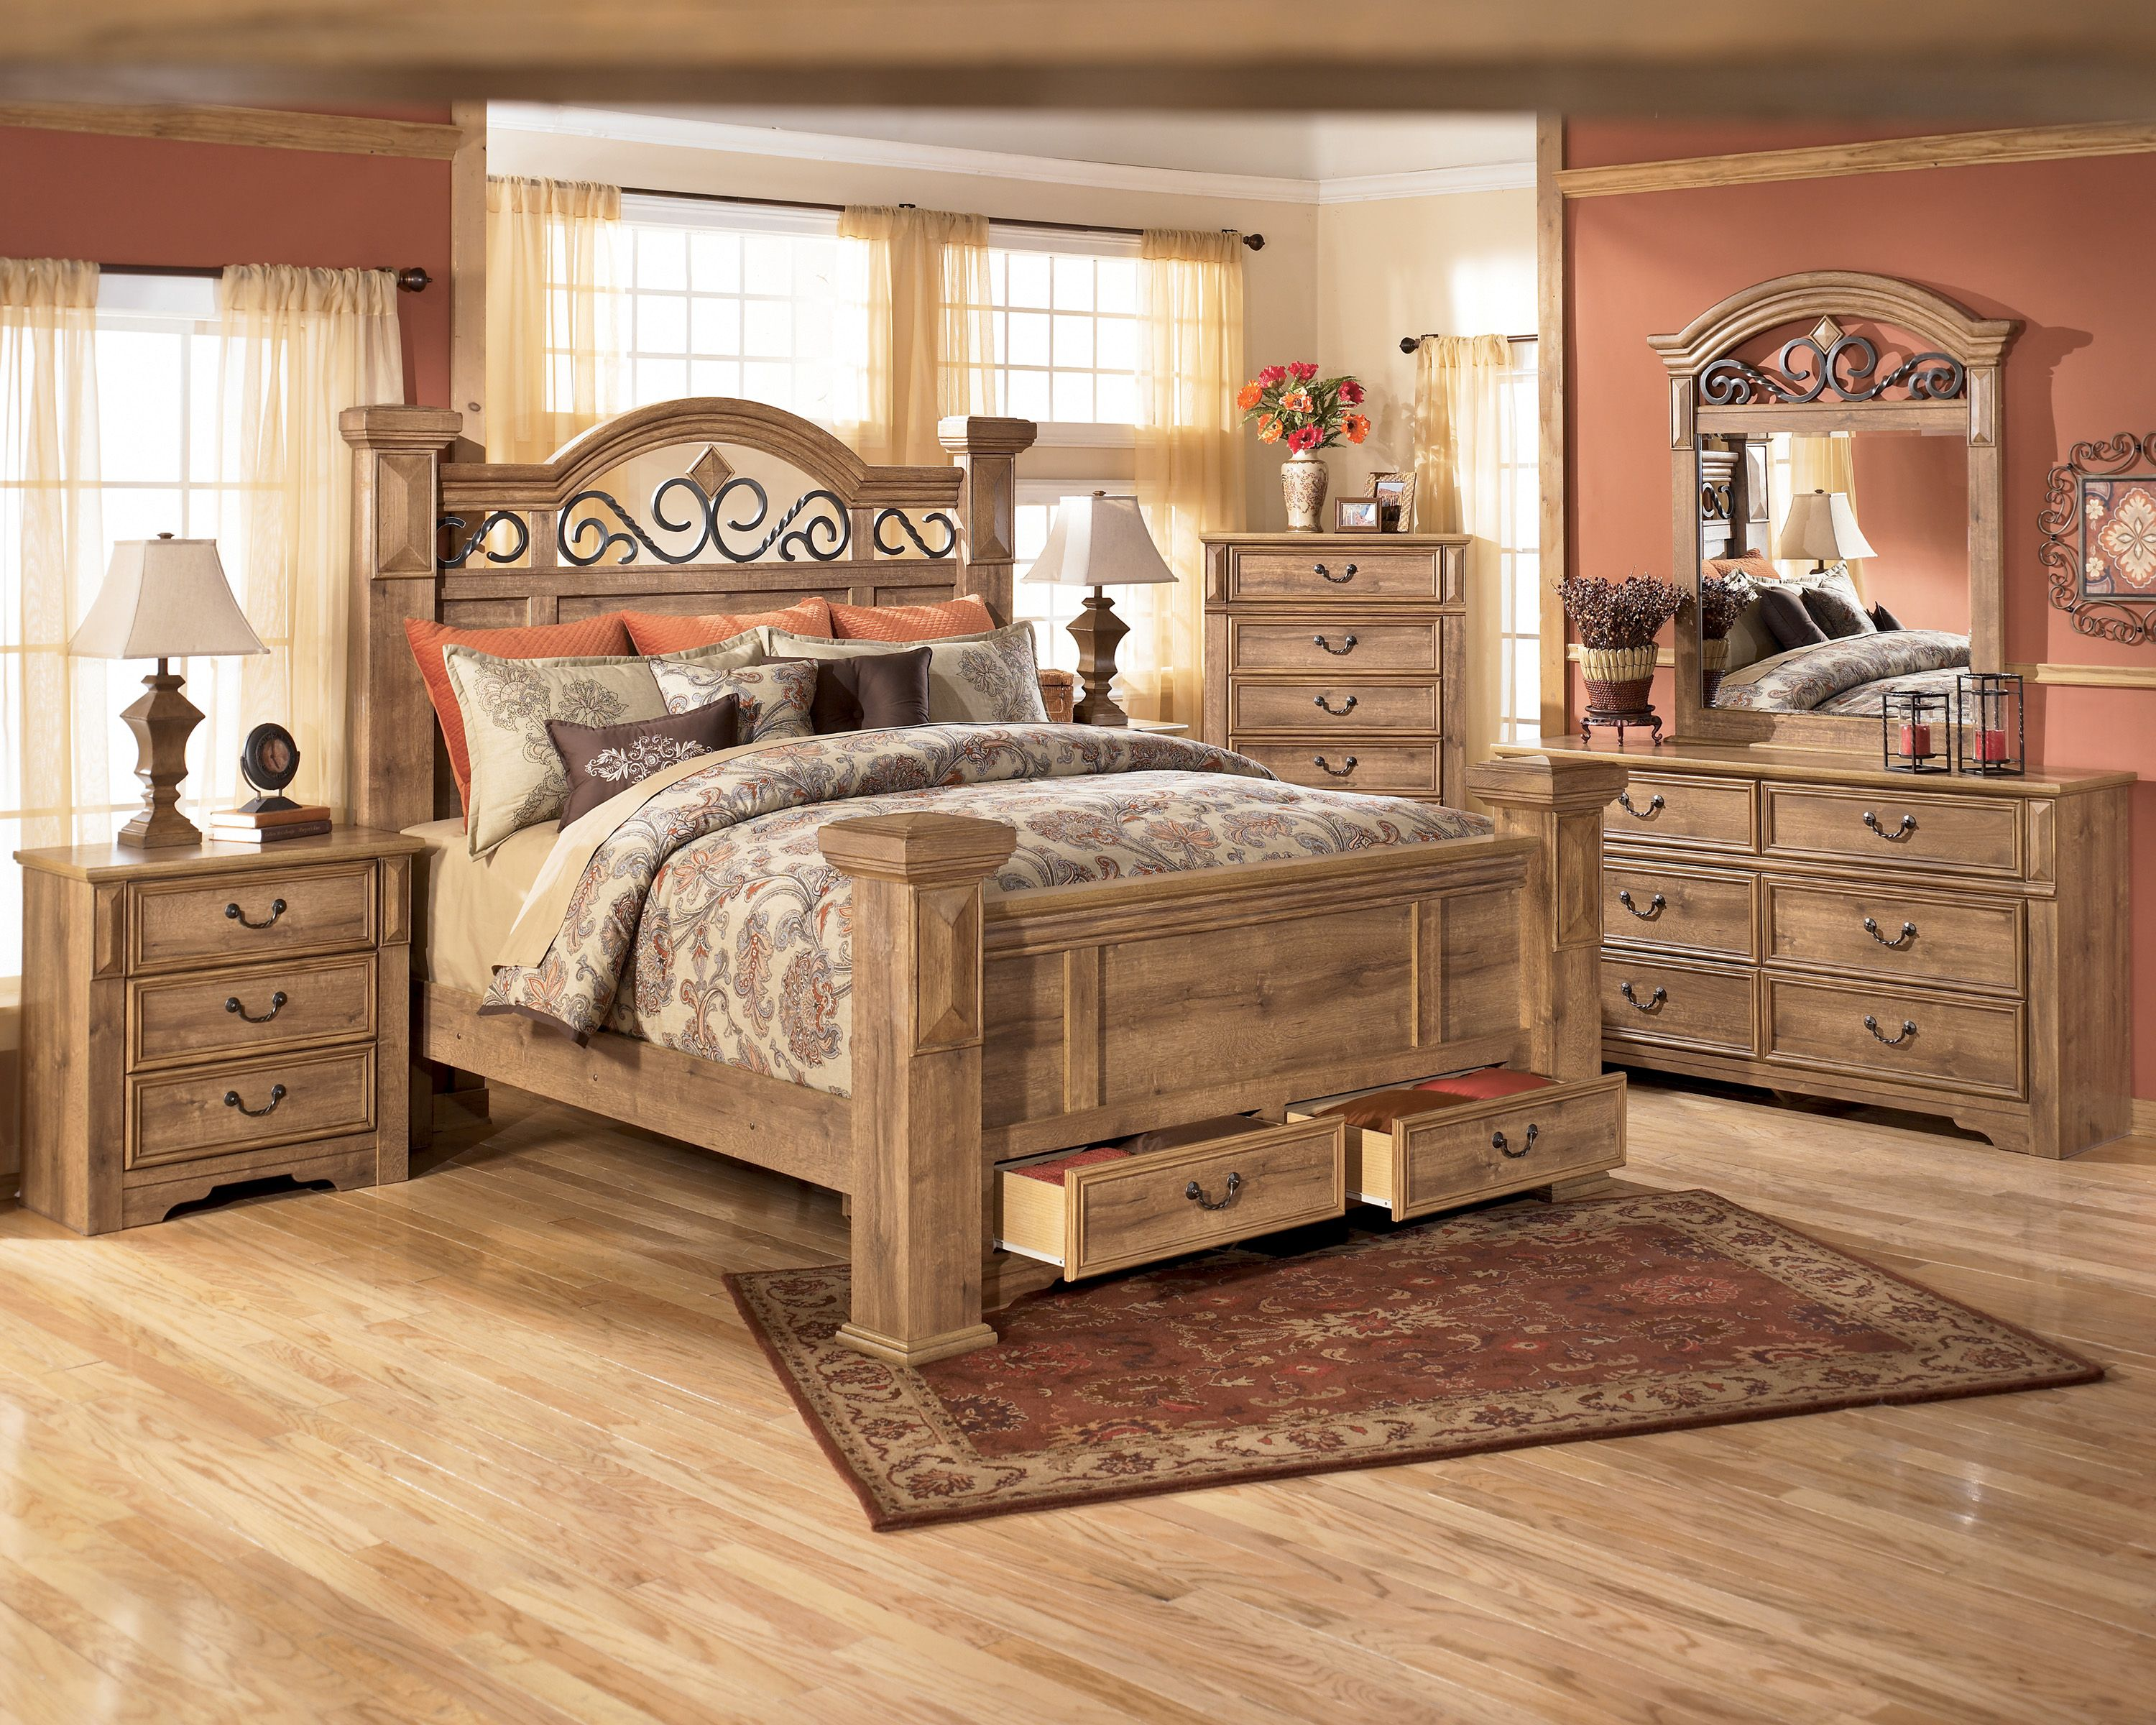 pictures of bedroom sets. Best King Size Bed Set Rosalinda 25  Bedroom furniture sets ideas on Pinterest